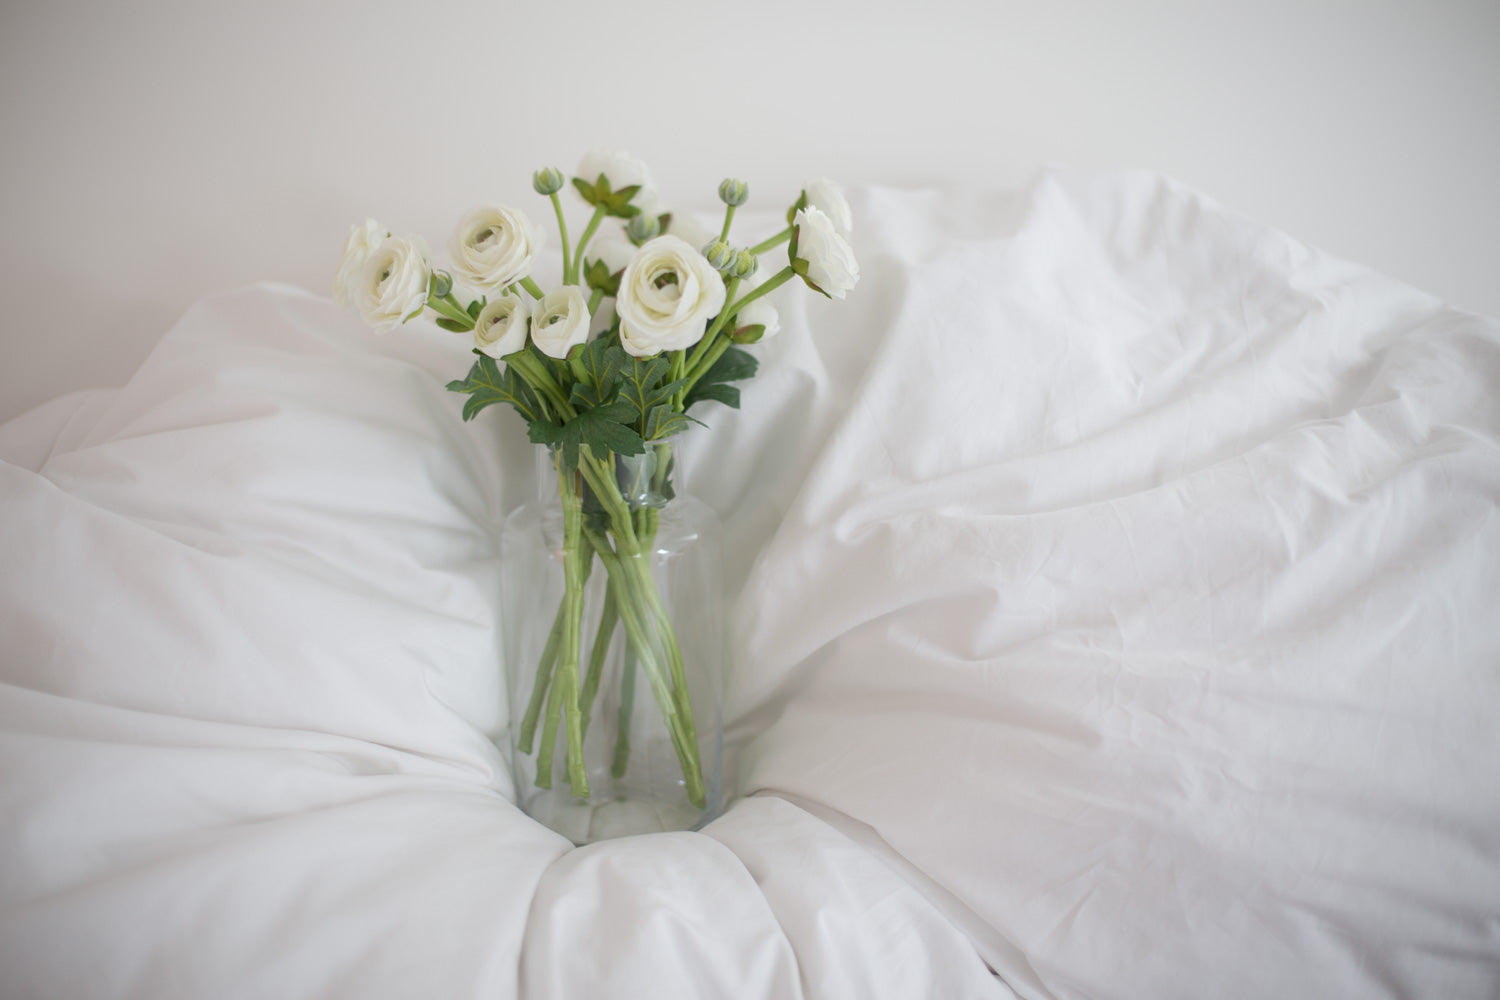 Caring for your Egyptian cotton bed linen | scooms